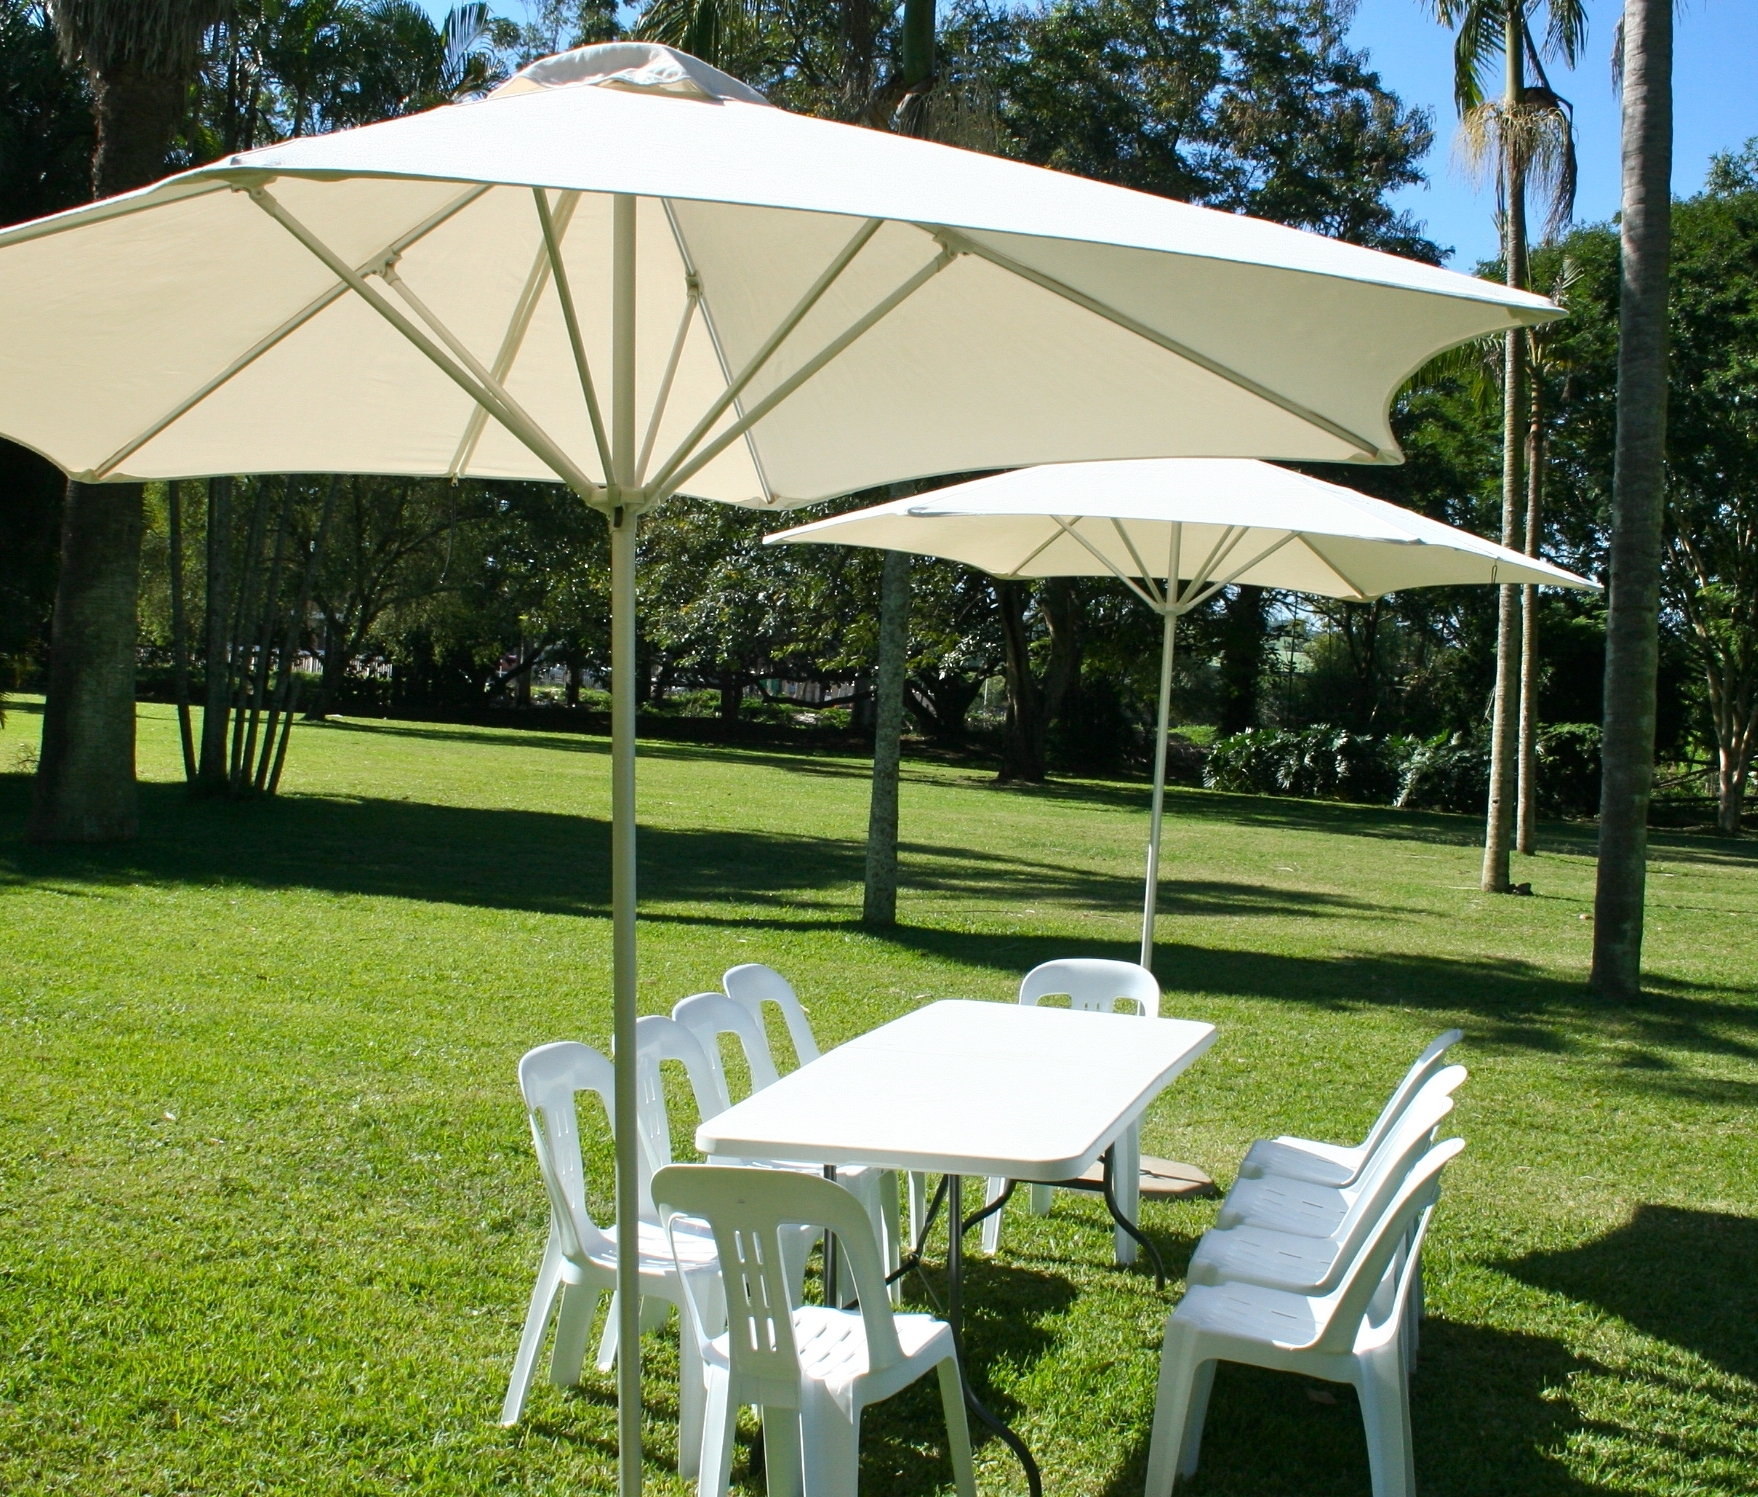 Patio Umbrellas For Rent Pertaining To Fashionable Outdoor Patio Umbrella – Rental Umbrella Hire (View 15 of 20)